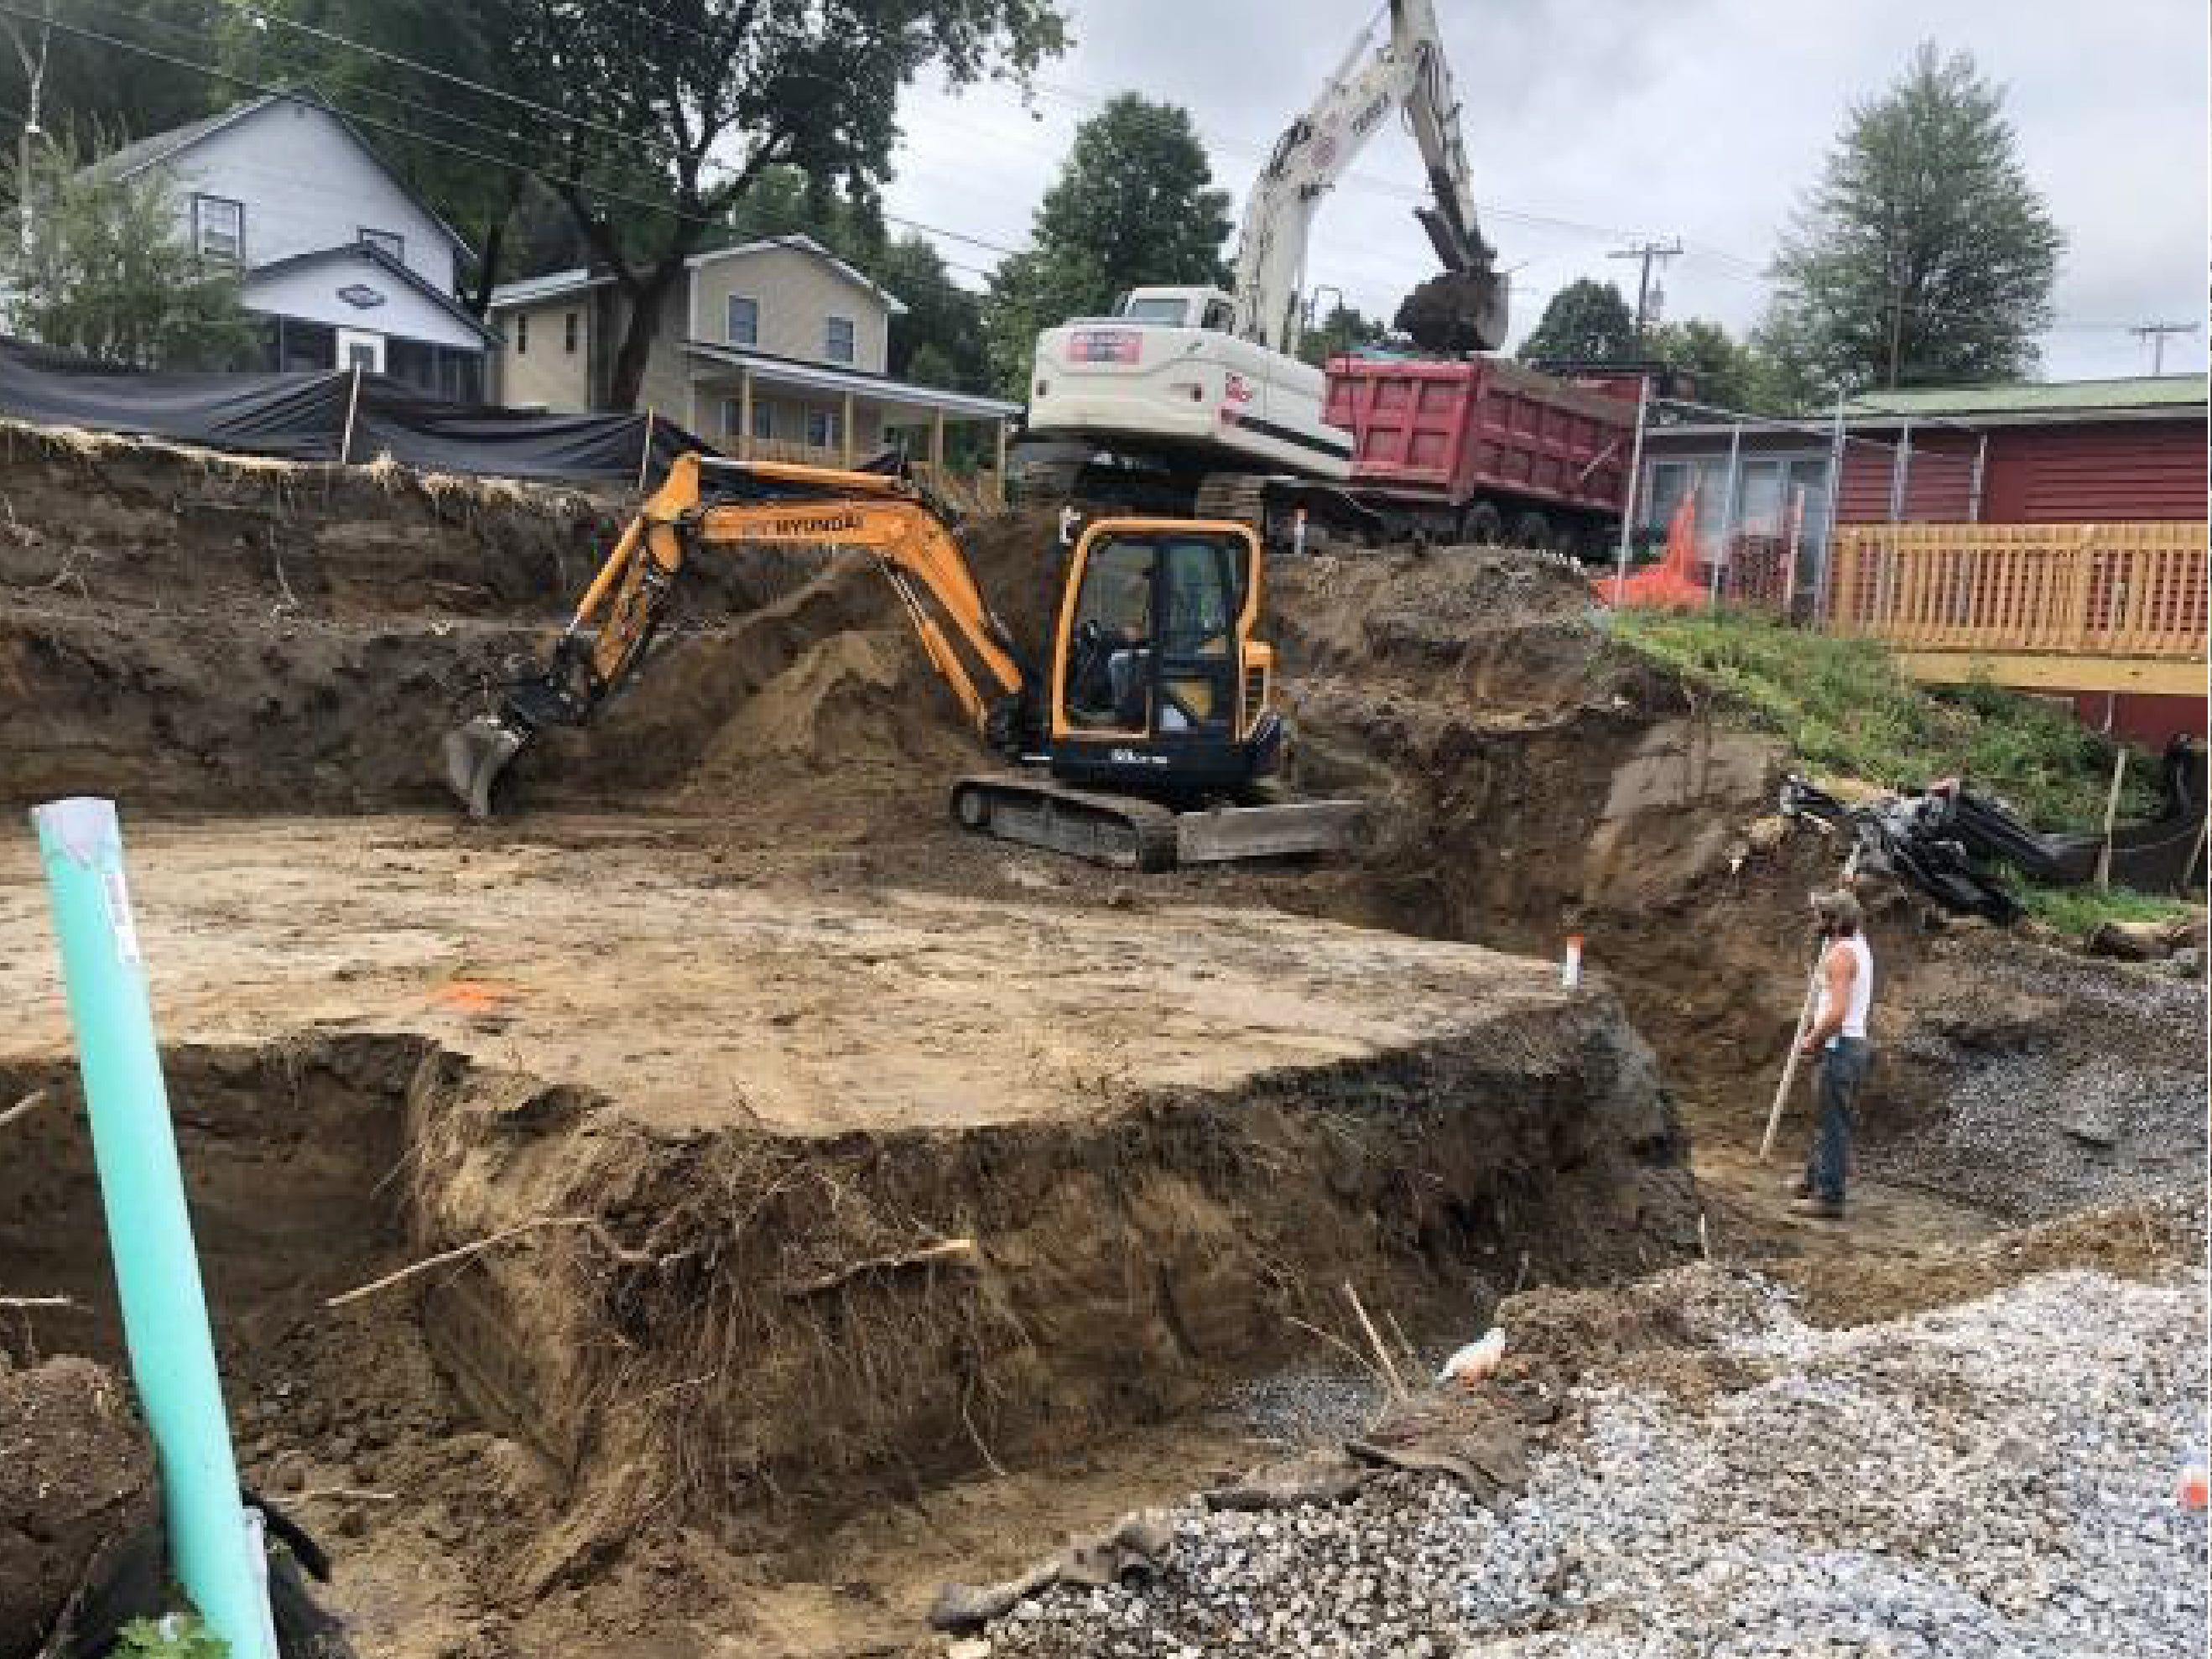 Excavation is underway for a new home on East Lakeshore Avenue in Colchester in this undated photograph submitted to town planners in 2018. A previous dwelling here was demolished in 2017.